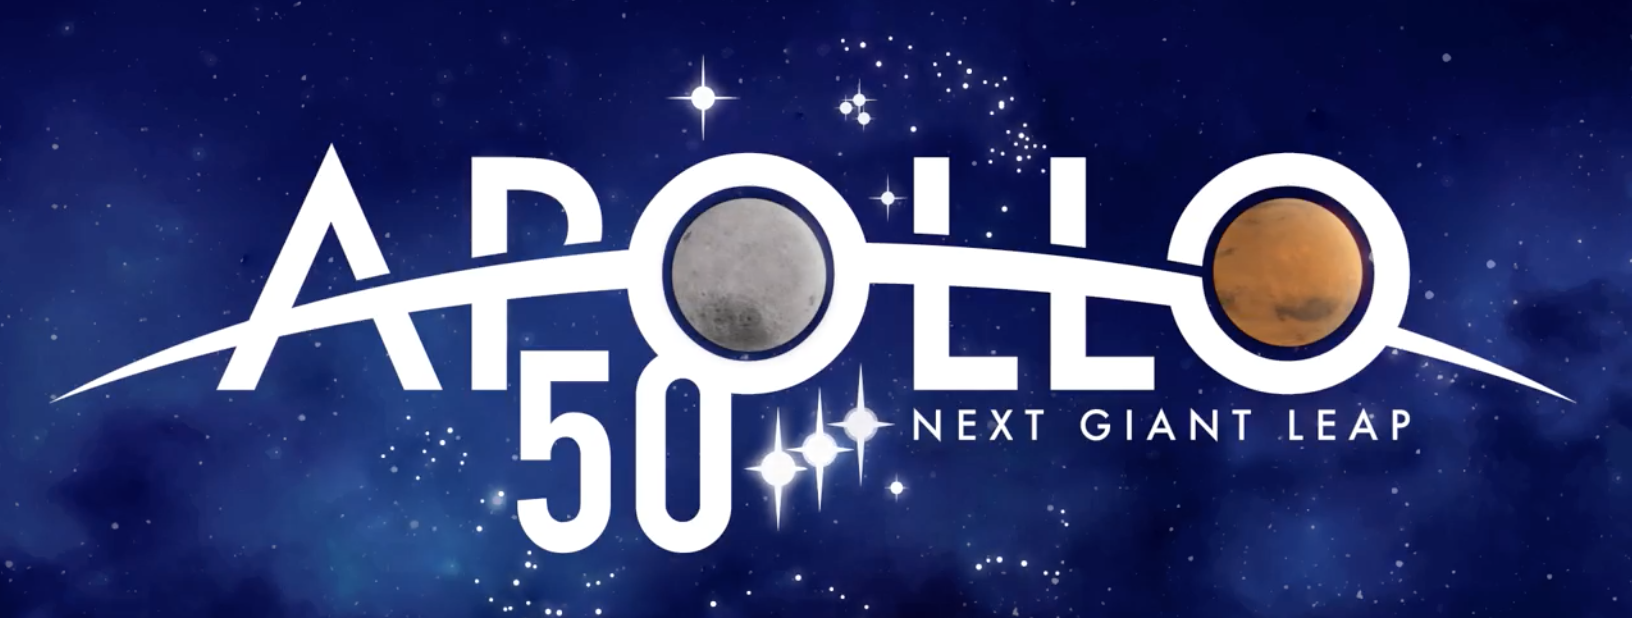 NASA Live - At 1 p.m. EDT on Friday, July 19, watch NASA TV live as we celebrate the 50th anniversary of Apollo 11 and look forward to missions to the Moon and Mars.